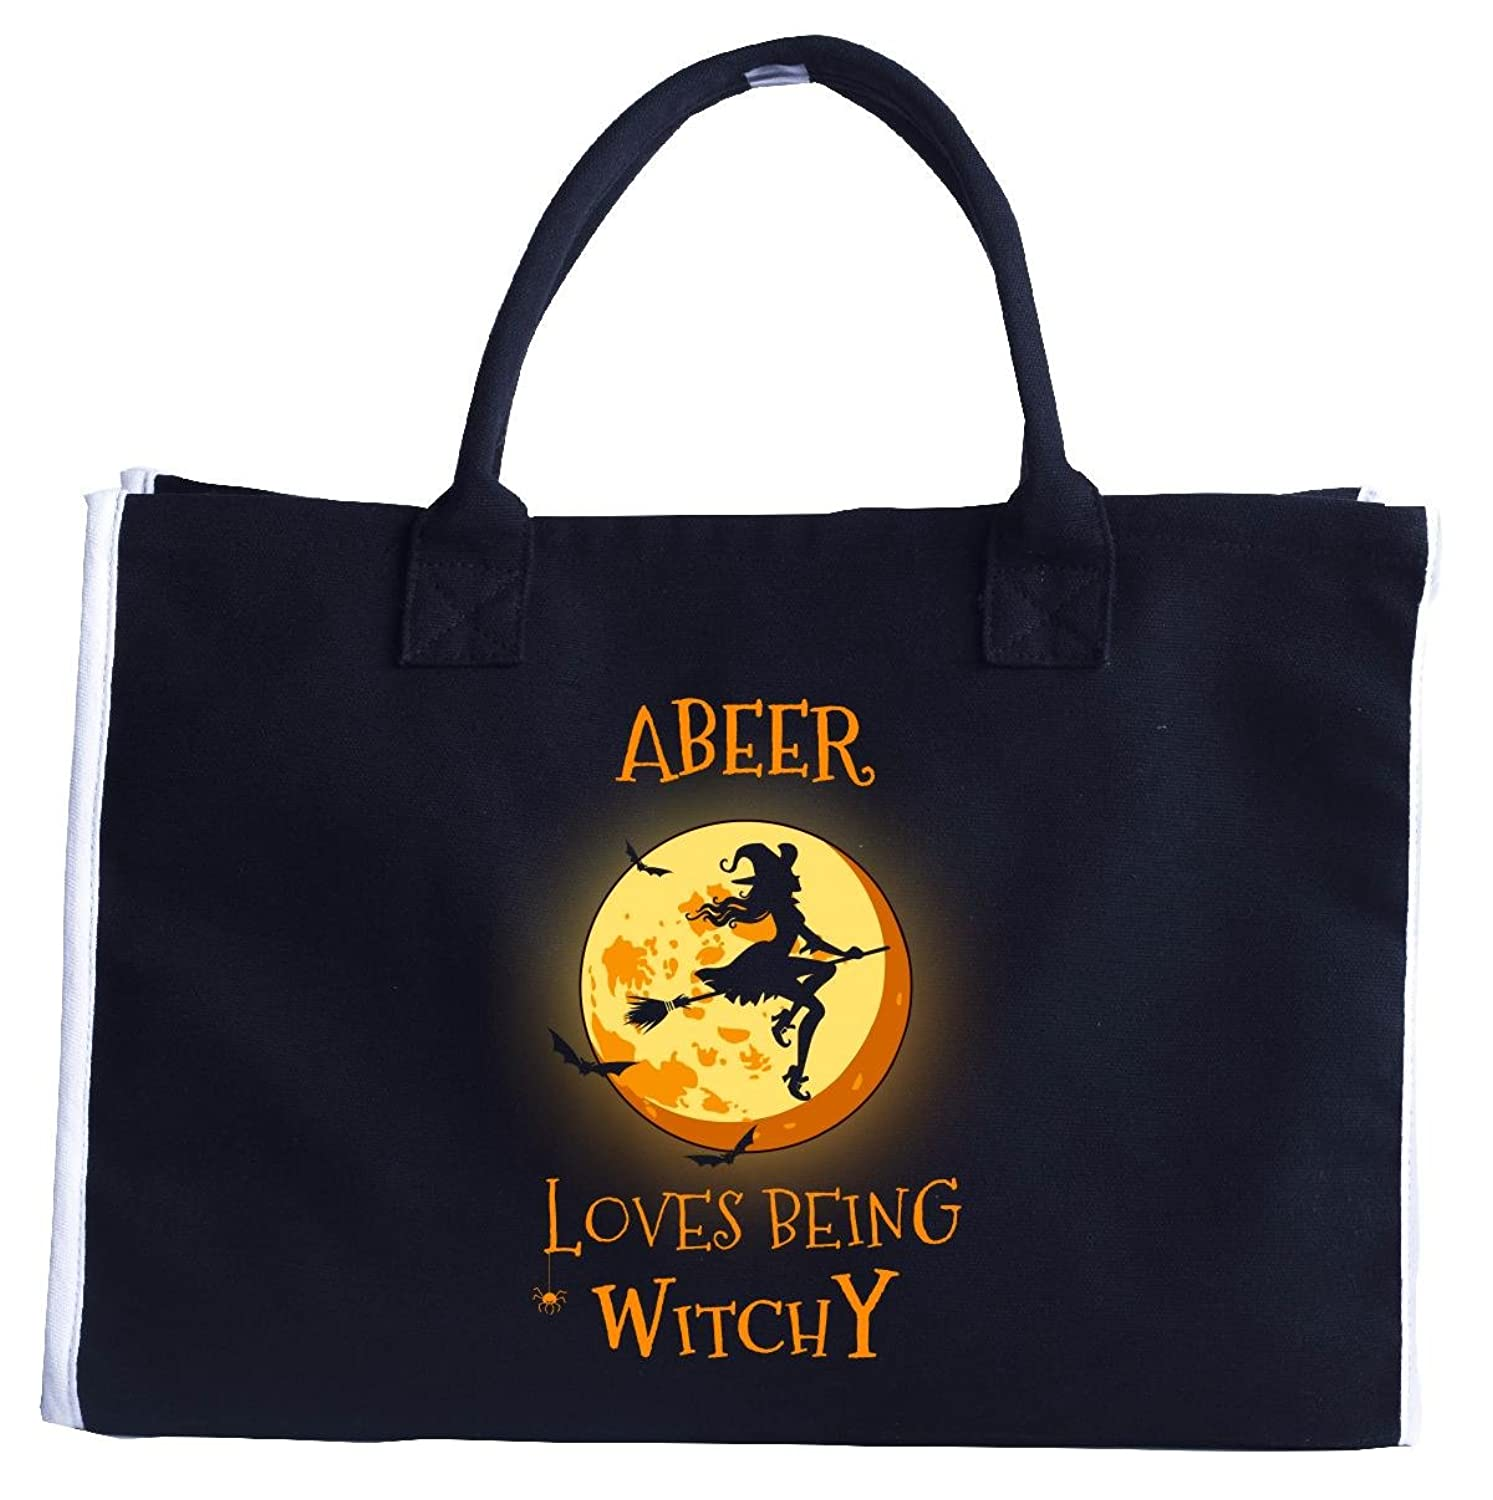 Abeer Loves Being Witchy. Halloween Gift - Fashion Customized Tote Bag